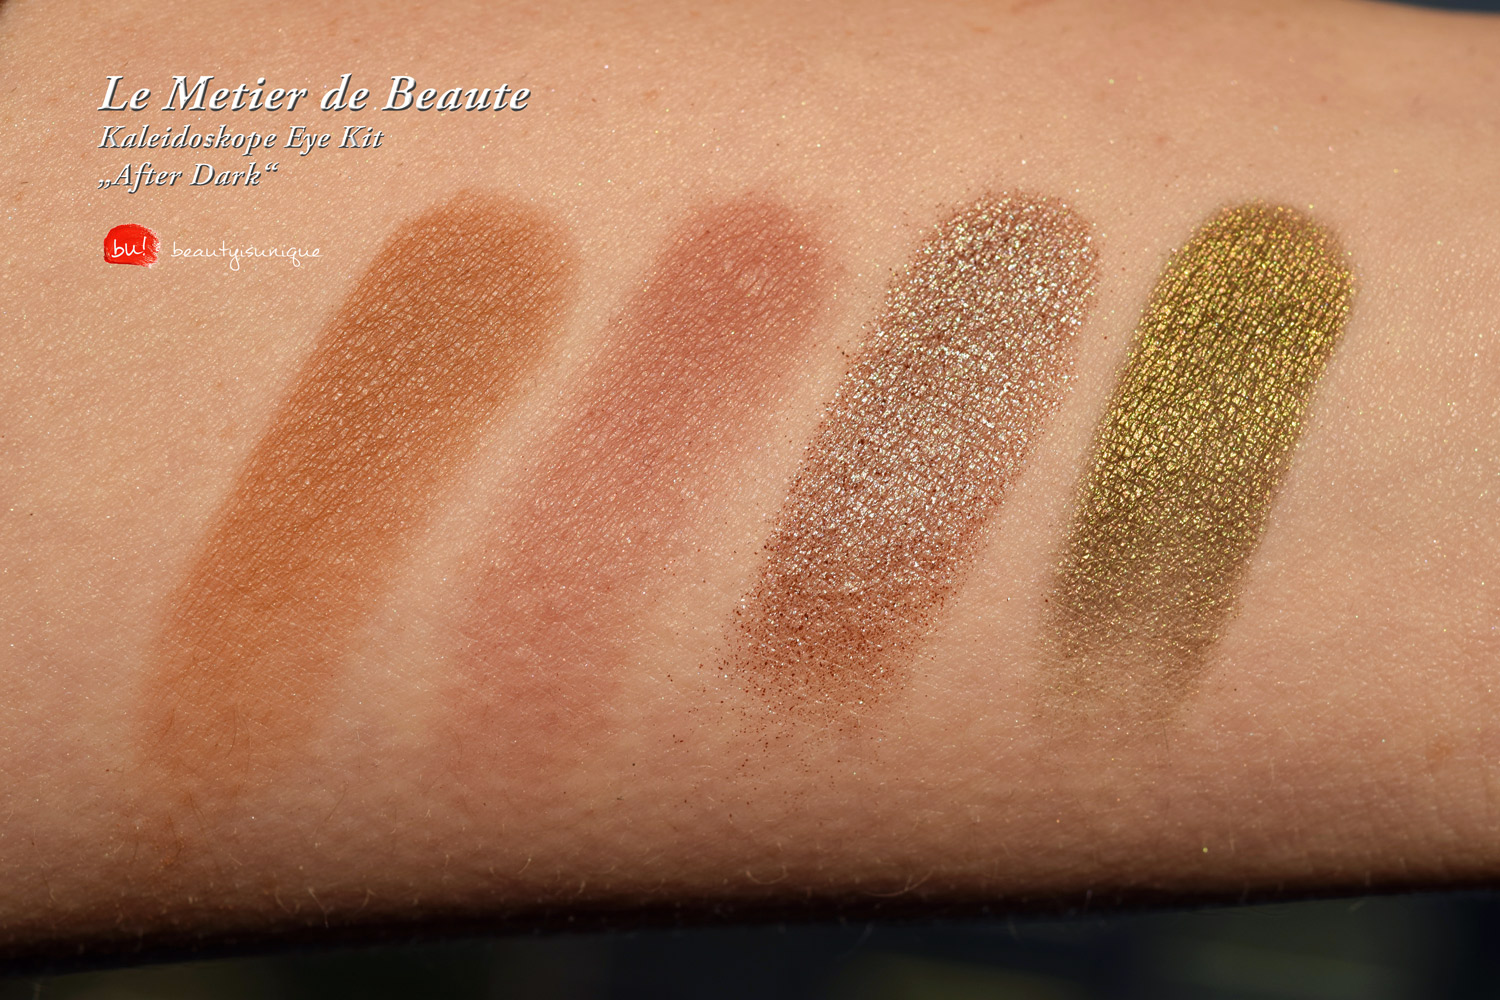 Le-metier-de-beaute-after-dark-swatches